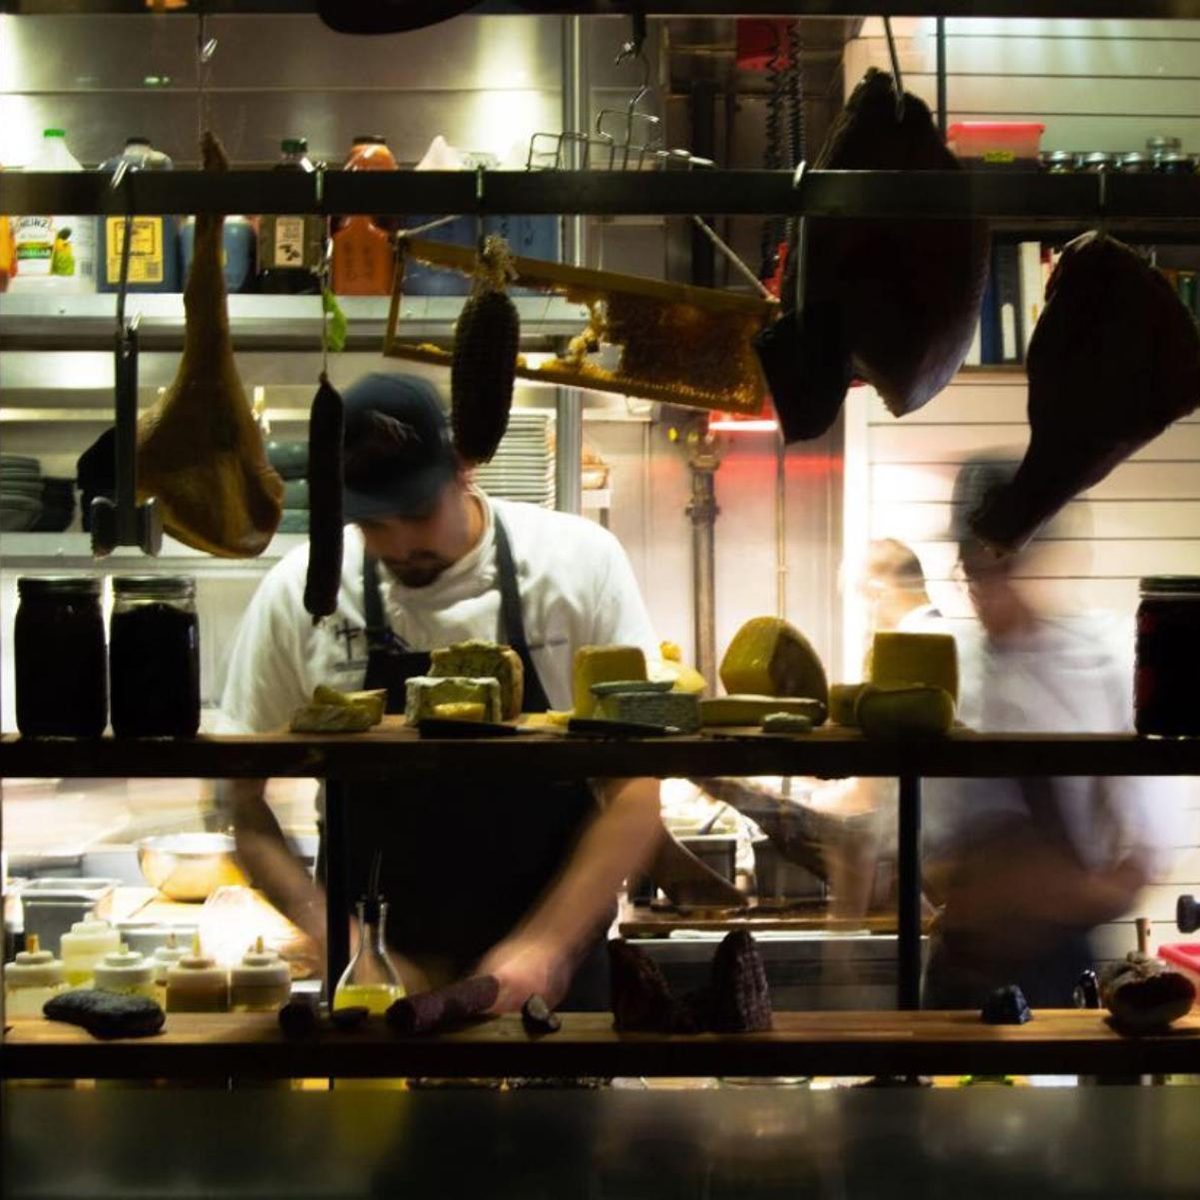 Chef working behind the scenes at Holeman & Finch